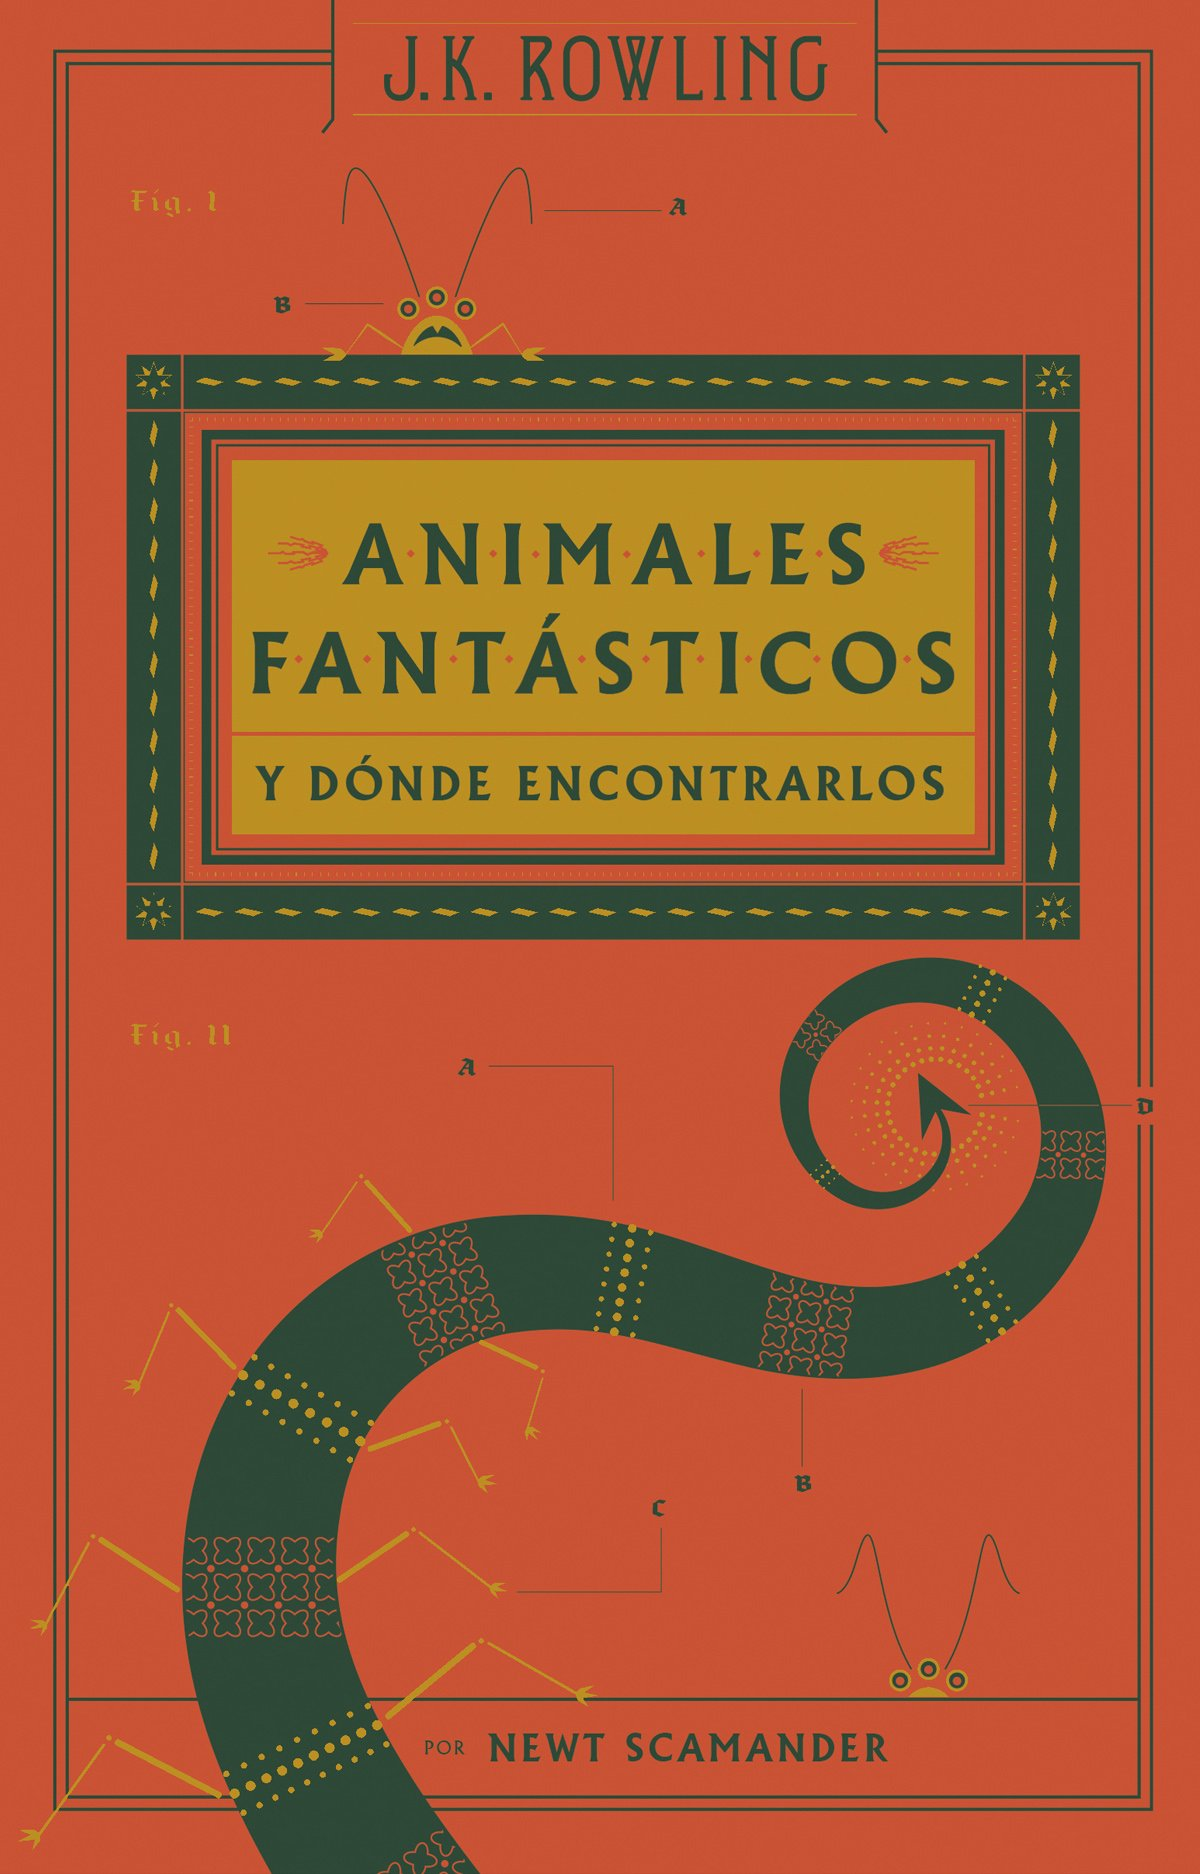 Animales fantásticos y dónde encontrarlos (real)